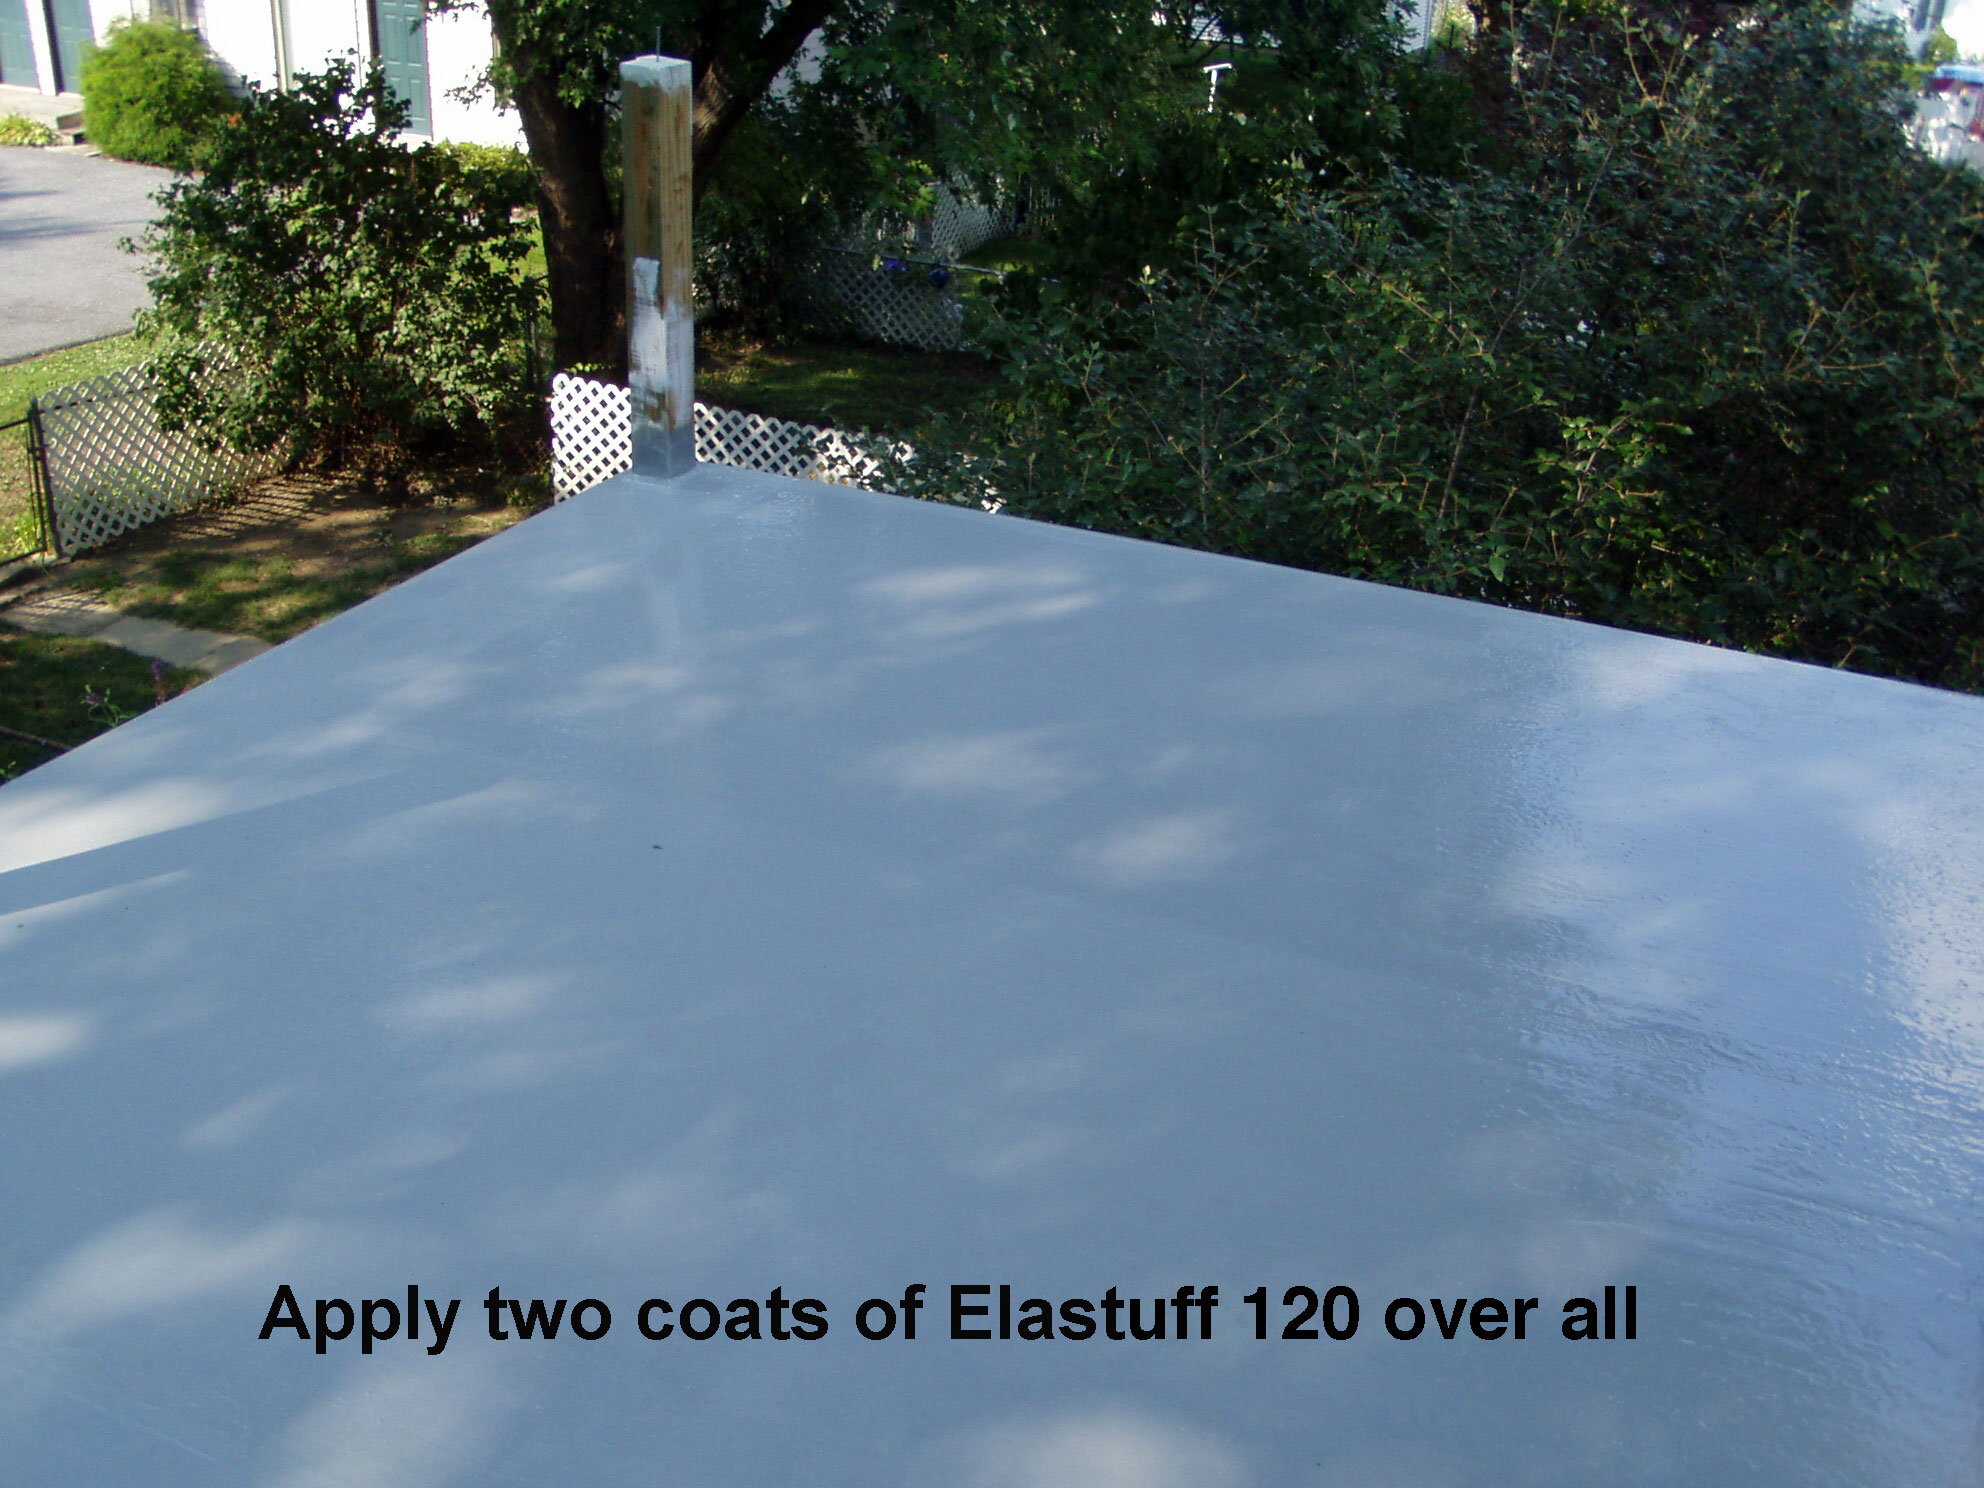 2 coats of Elastuff 120